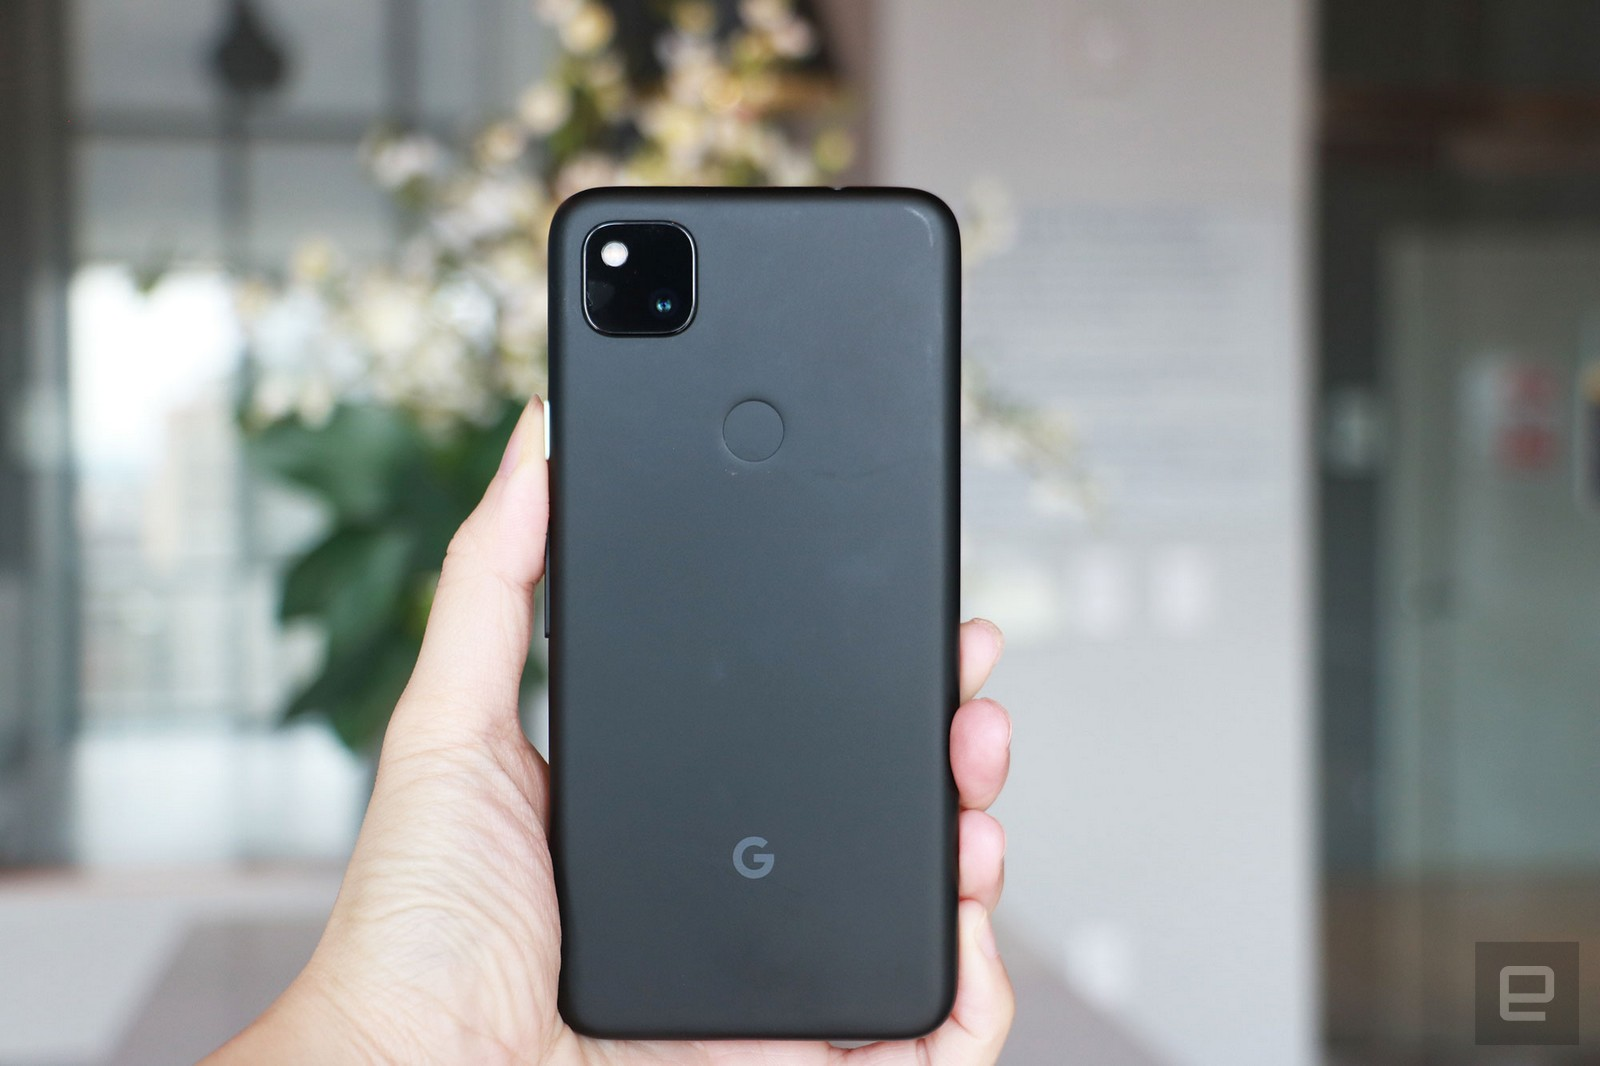 Google unveils cheaper Pixel smartphone as virus curbs spending